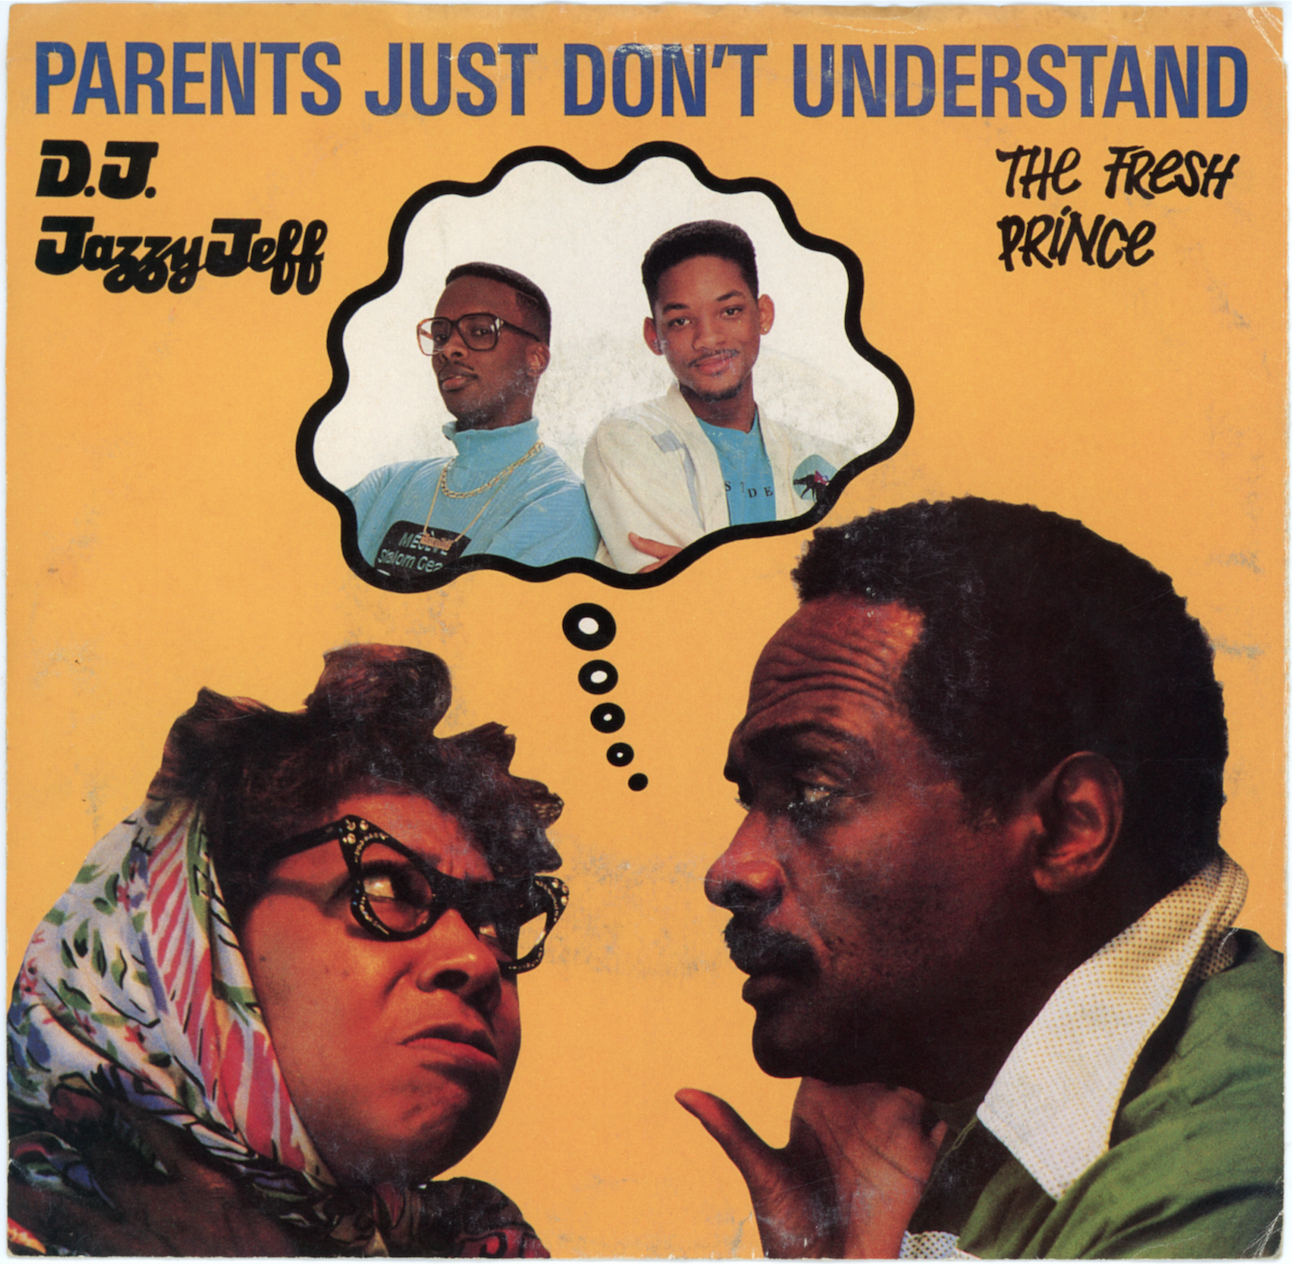 The Oral History of Will Smith and DJ Jazzy Jeff's 'Parents Just Don't Understand'